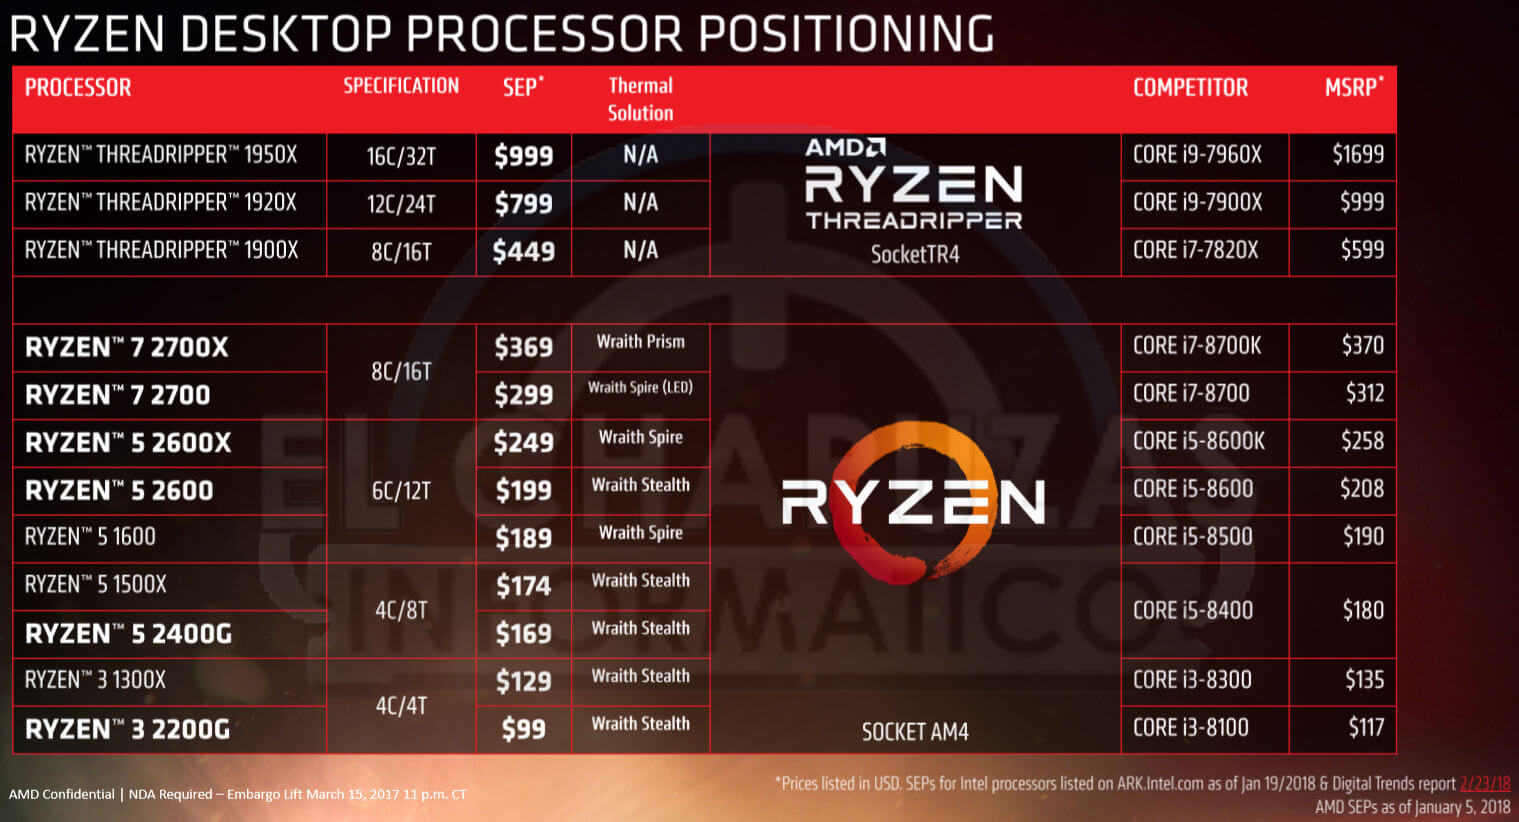 https://www.dsogaming.com/wp-content/uploads/2018/03/AMD-Ryzen-2000-Precios.jpg